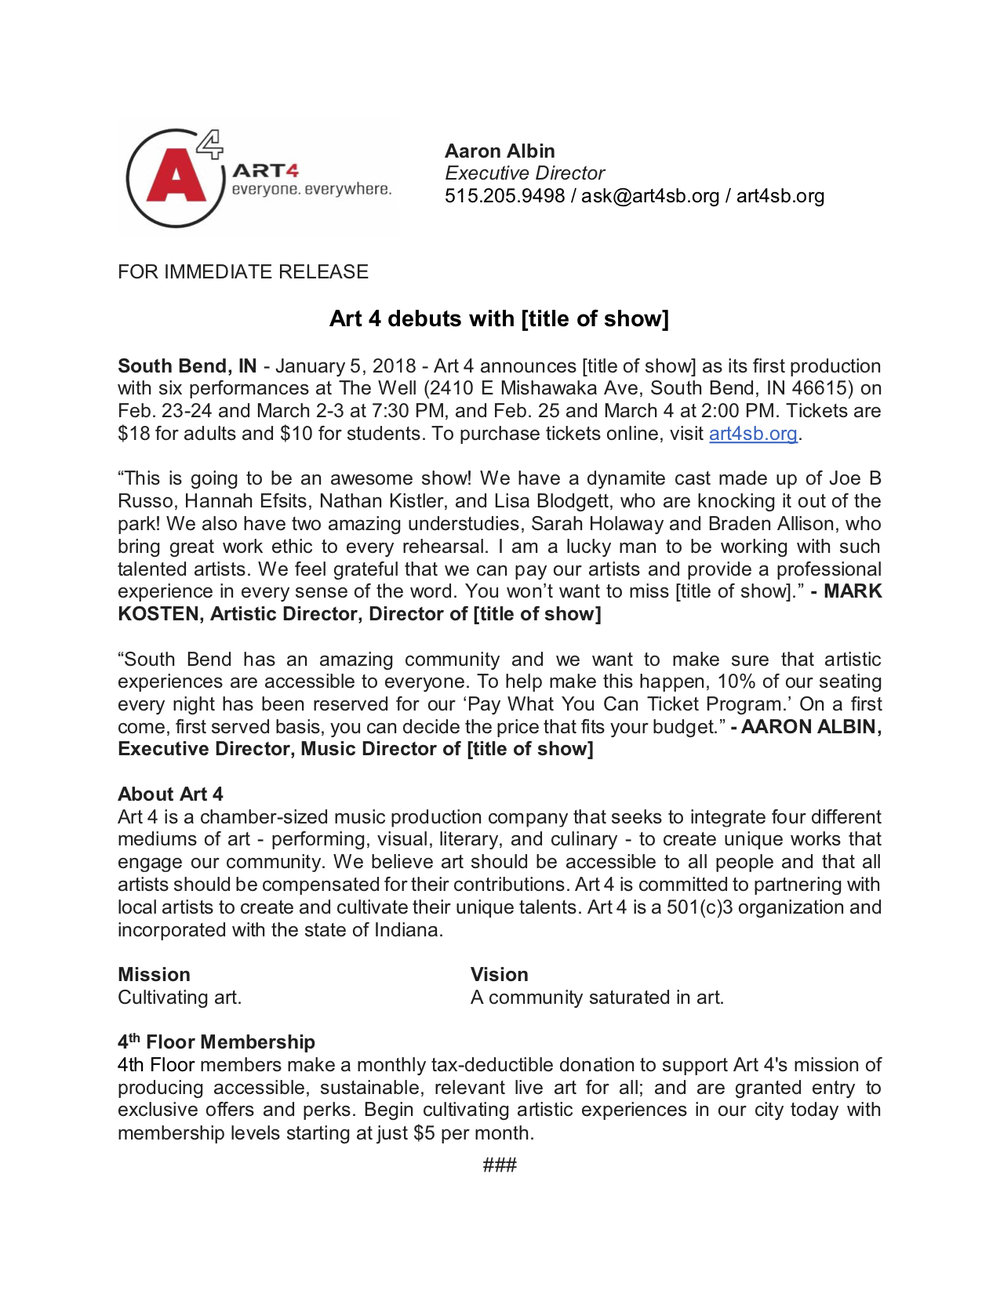 Press Release - Art 4 debuts with [title of show].jpg